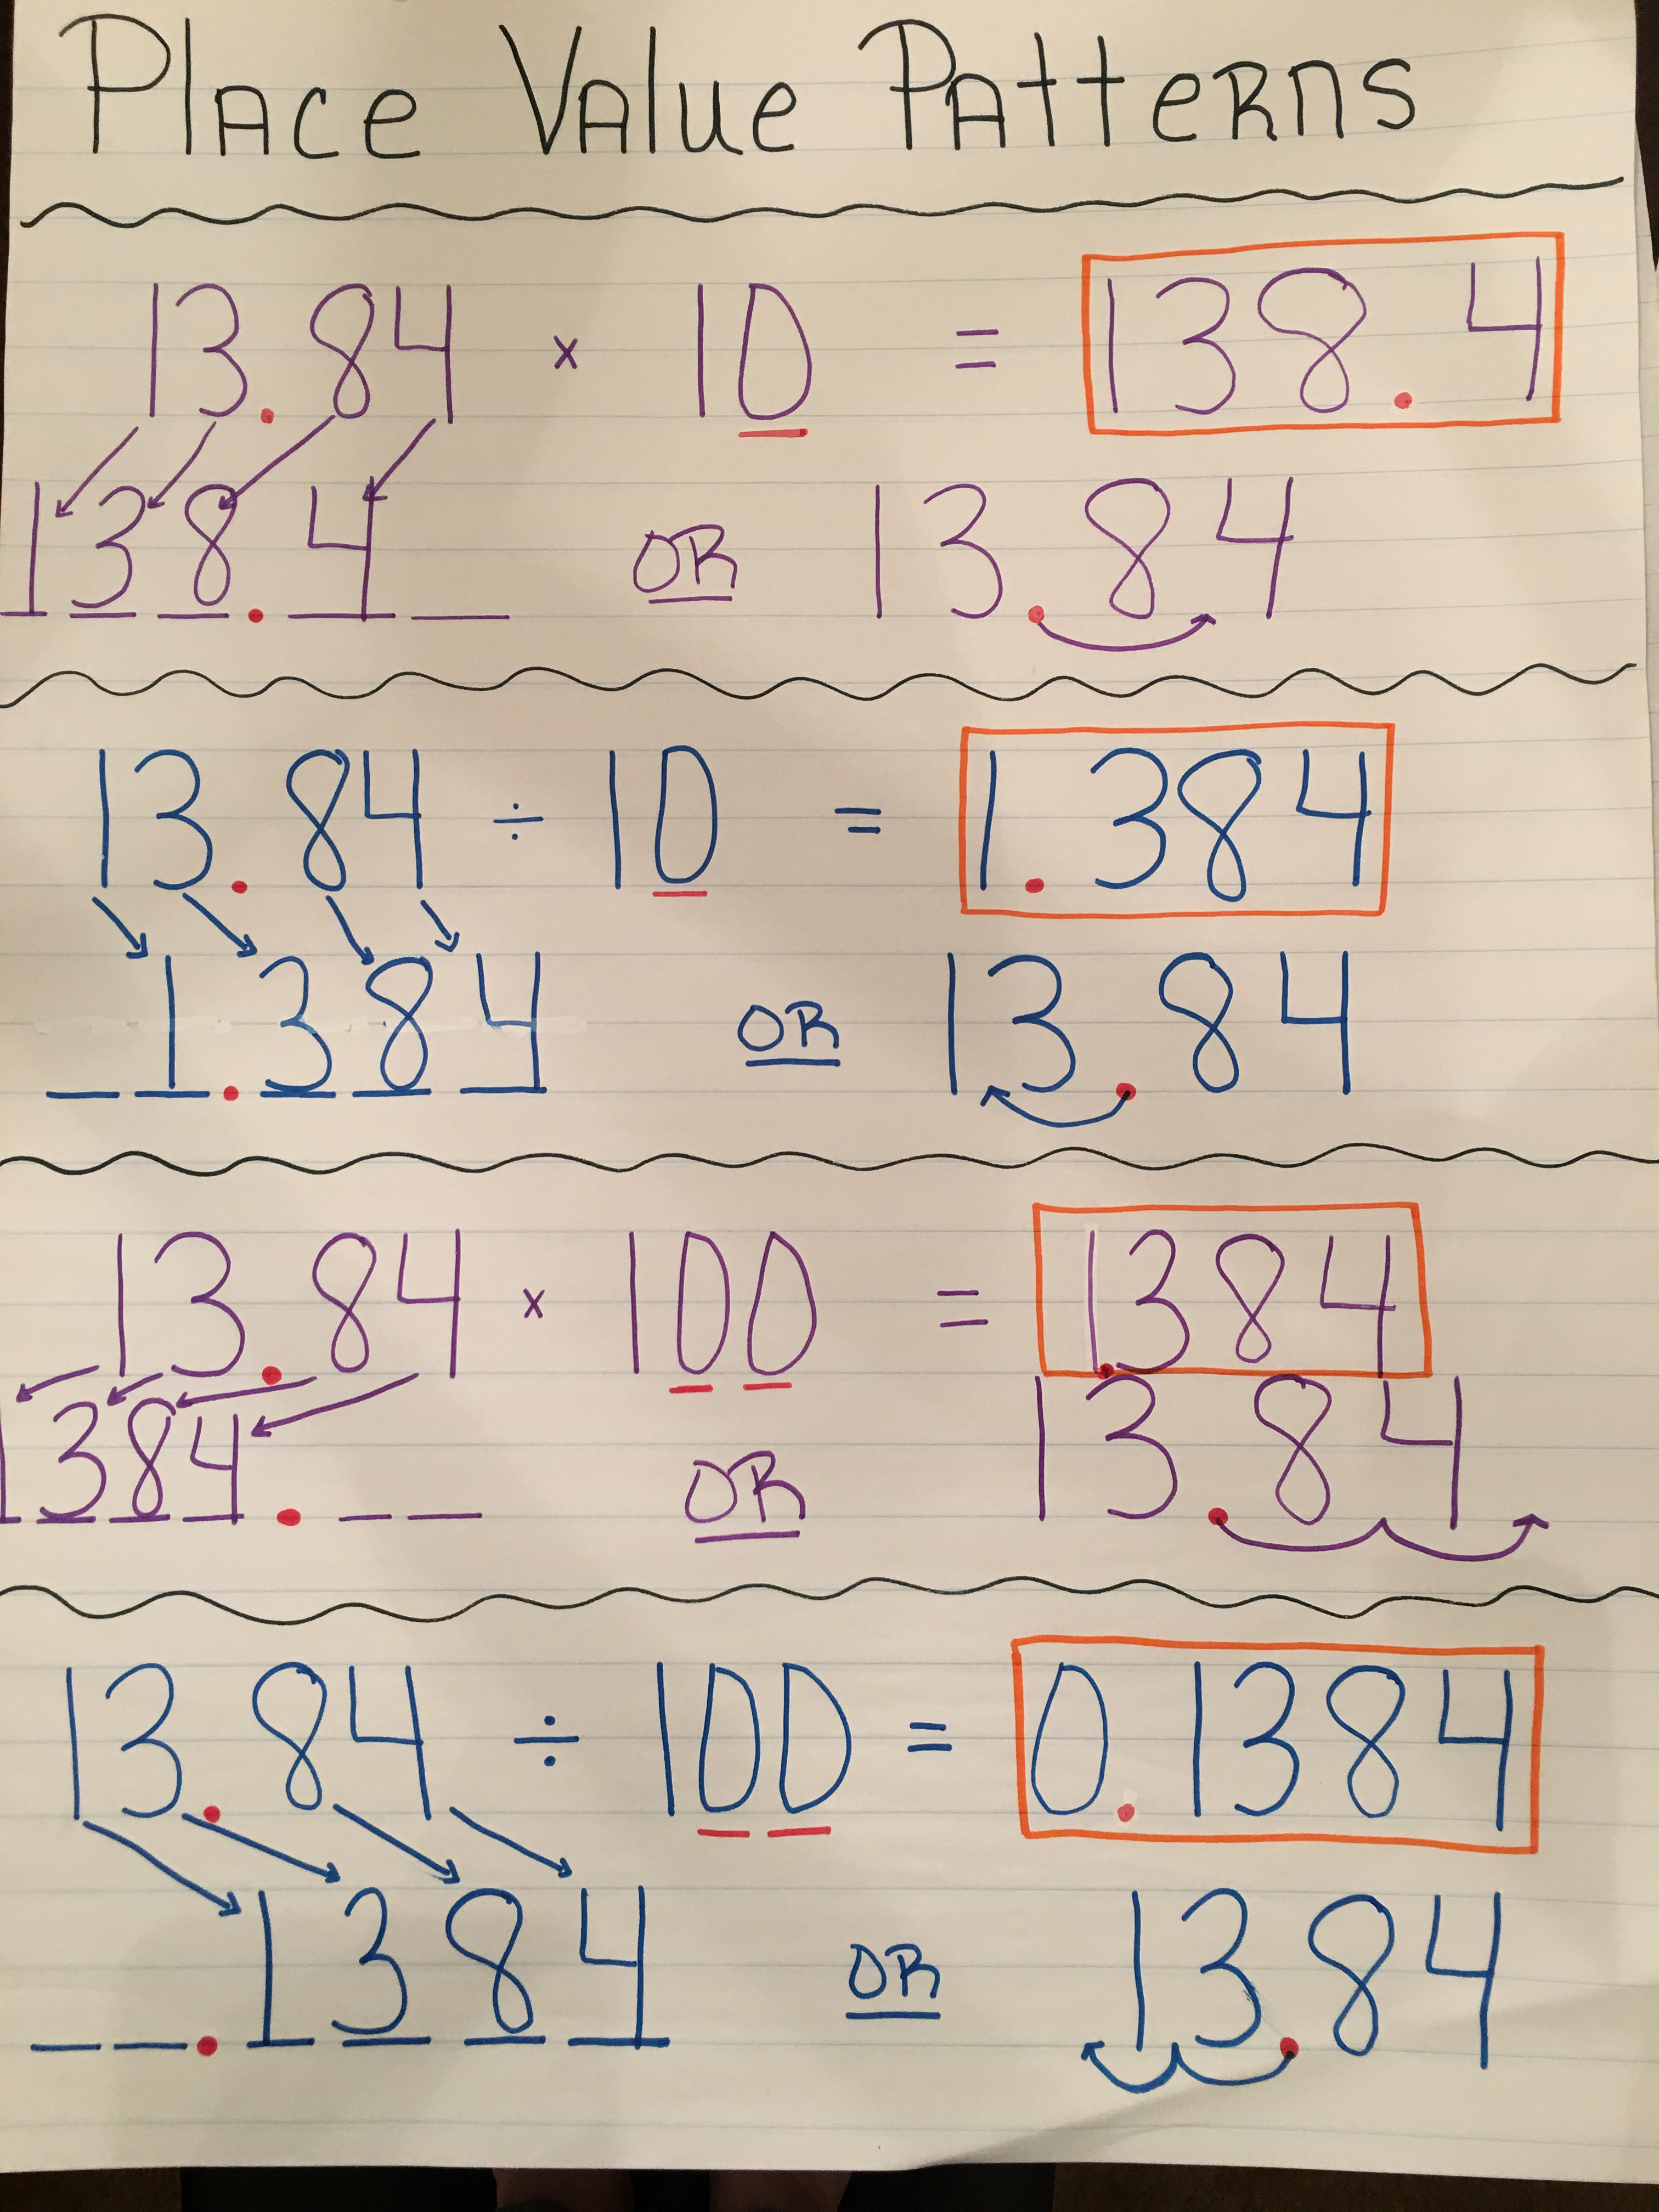 Place Value Patterns Multiplying Amp Dividing By 10 For